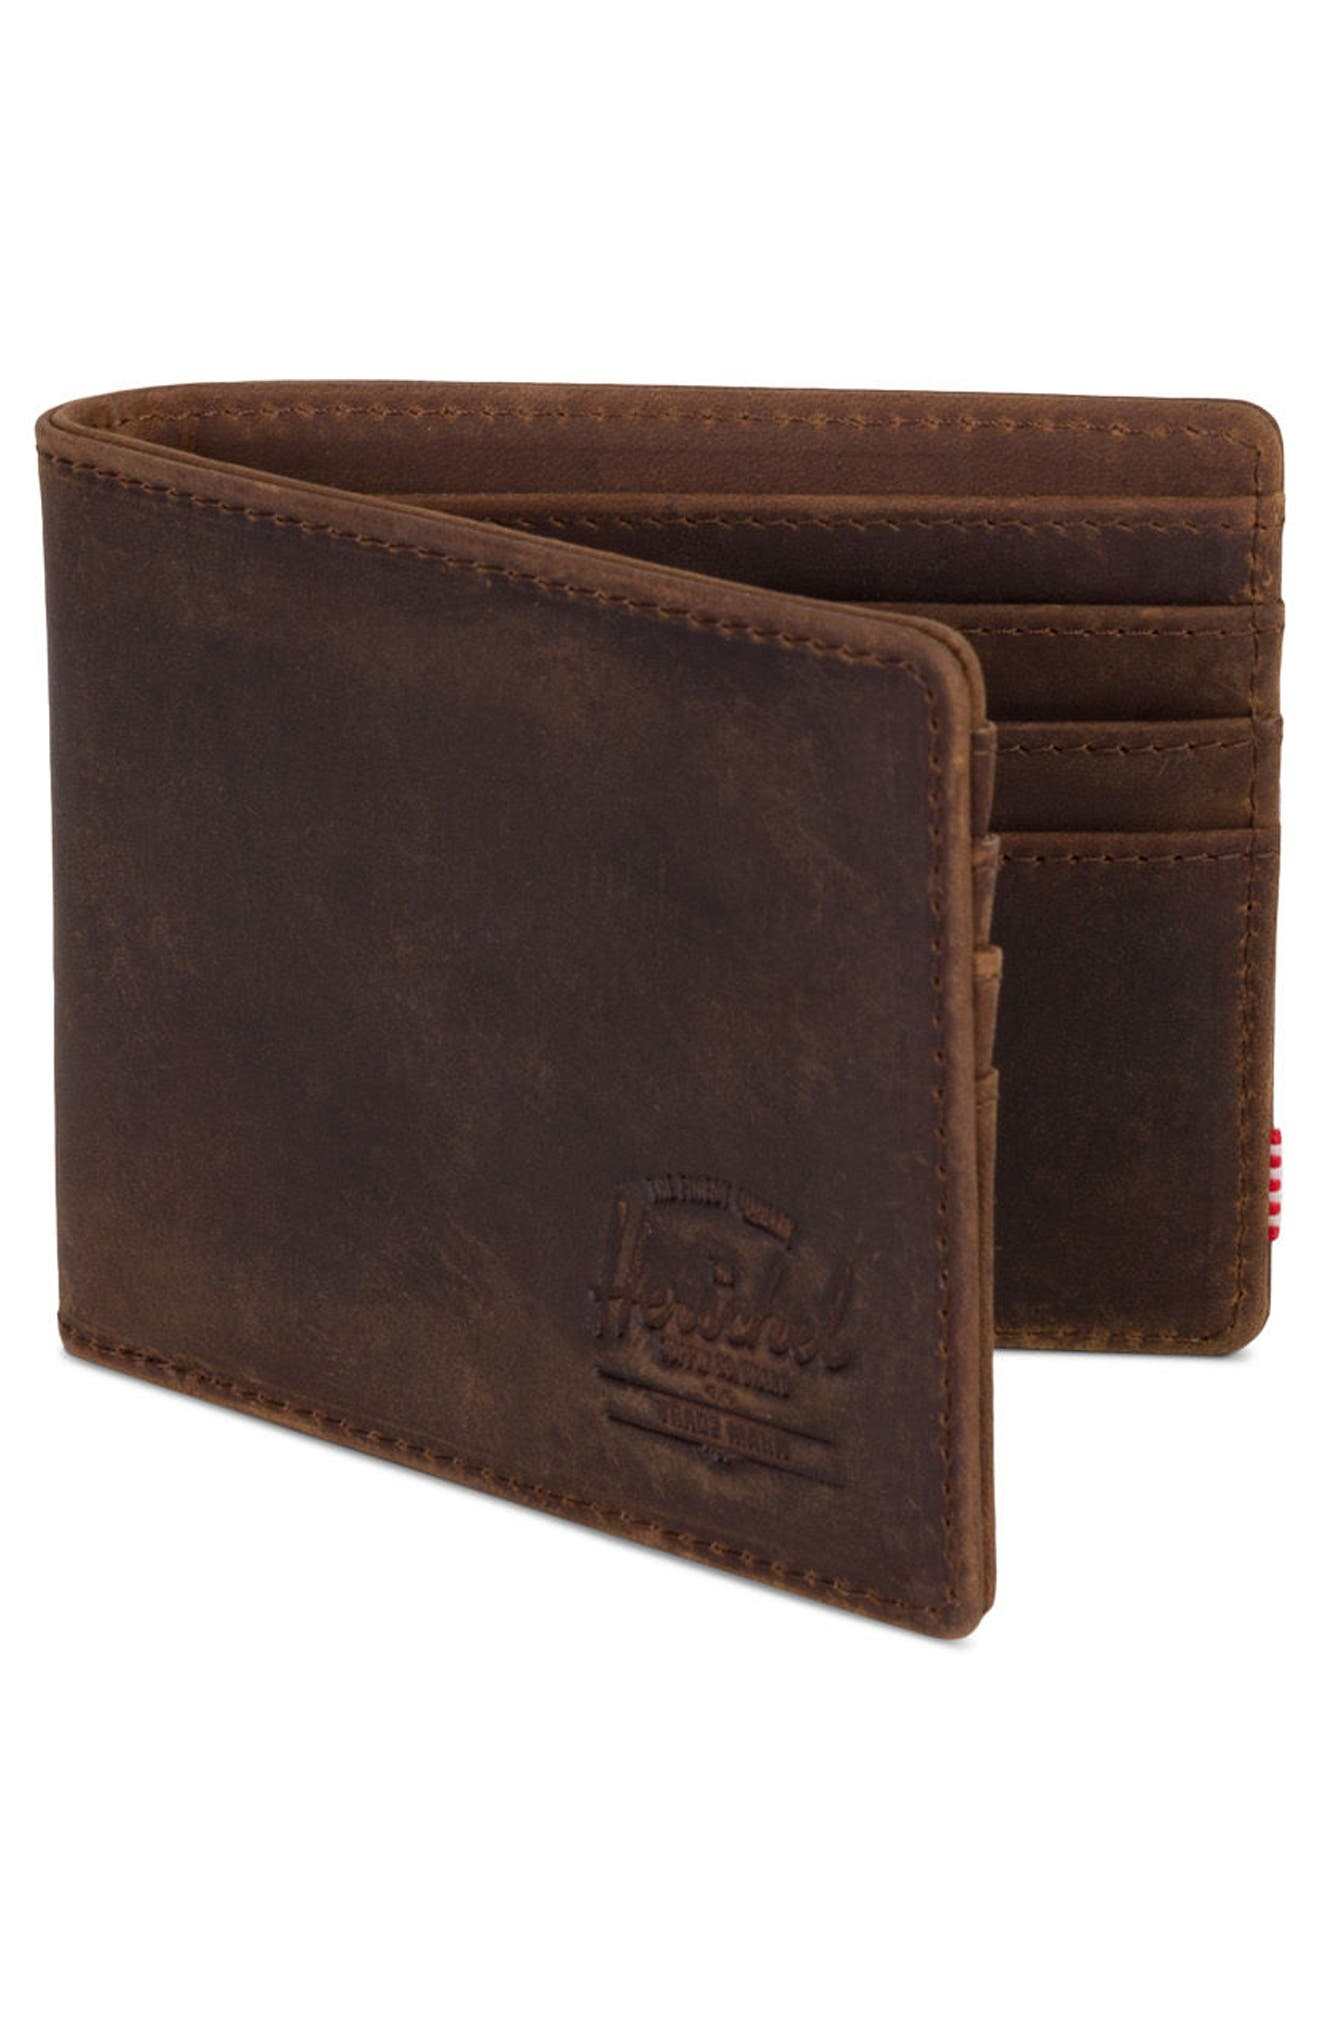 Roy Leather Wallet,                             Alternate thumbnail 3, color,                             Brown